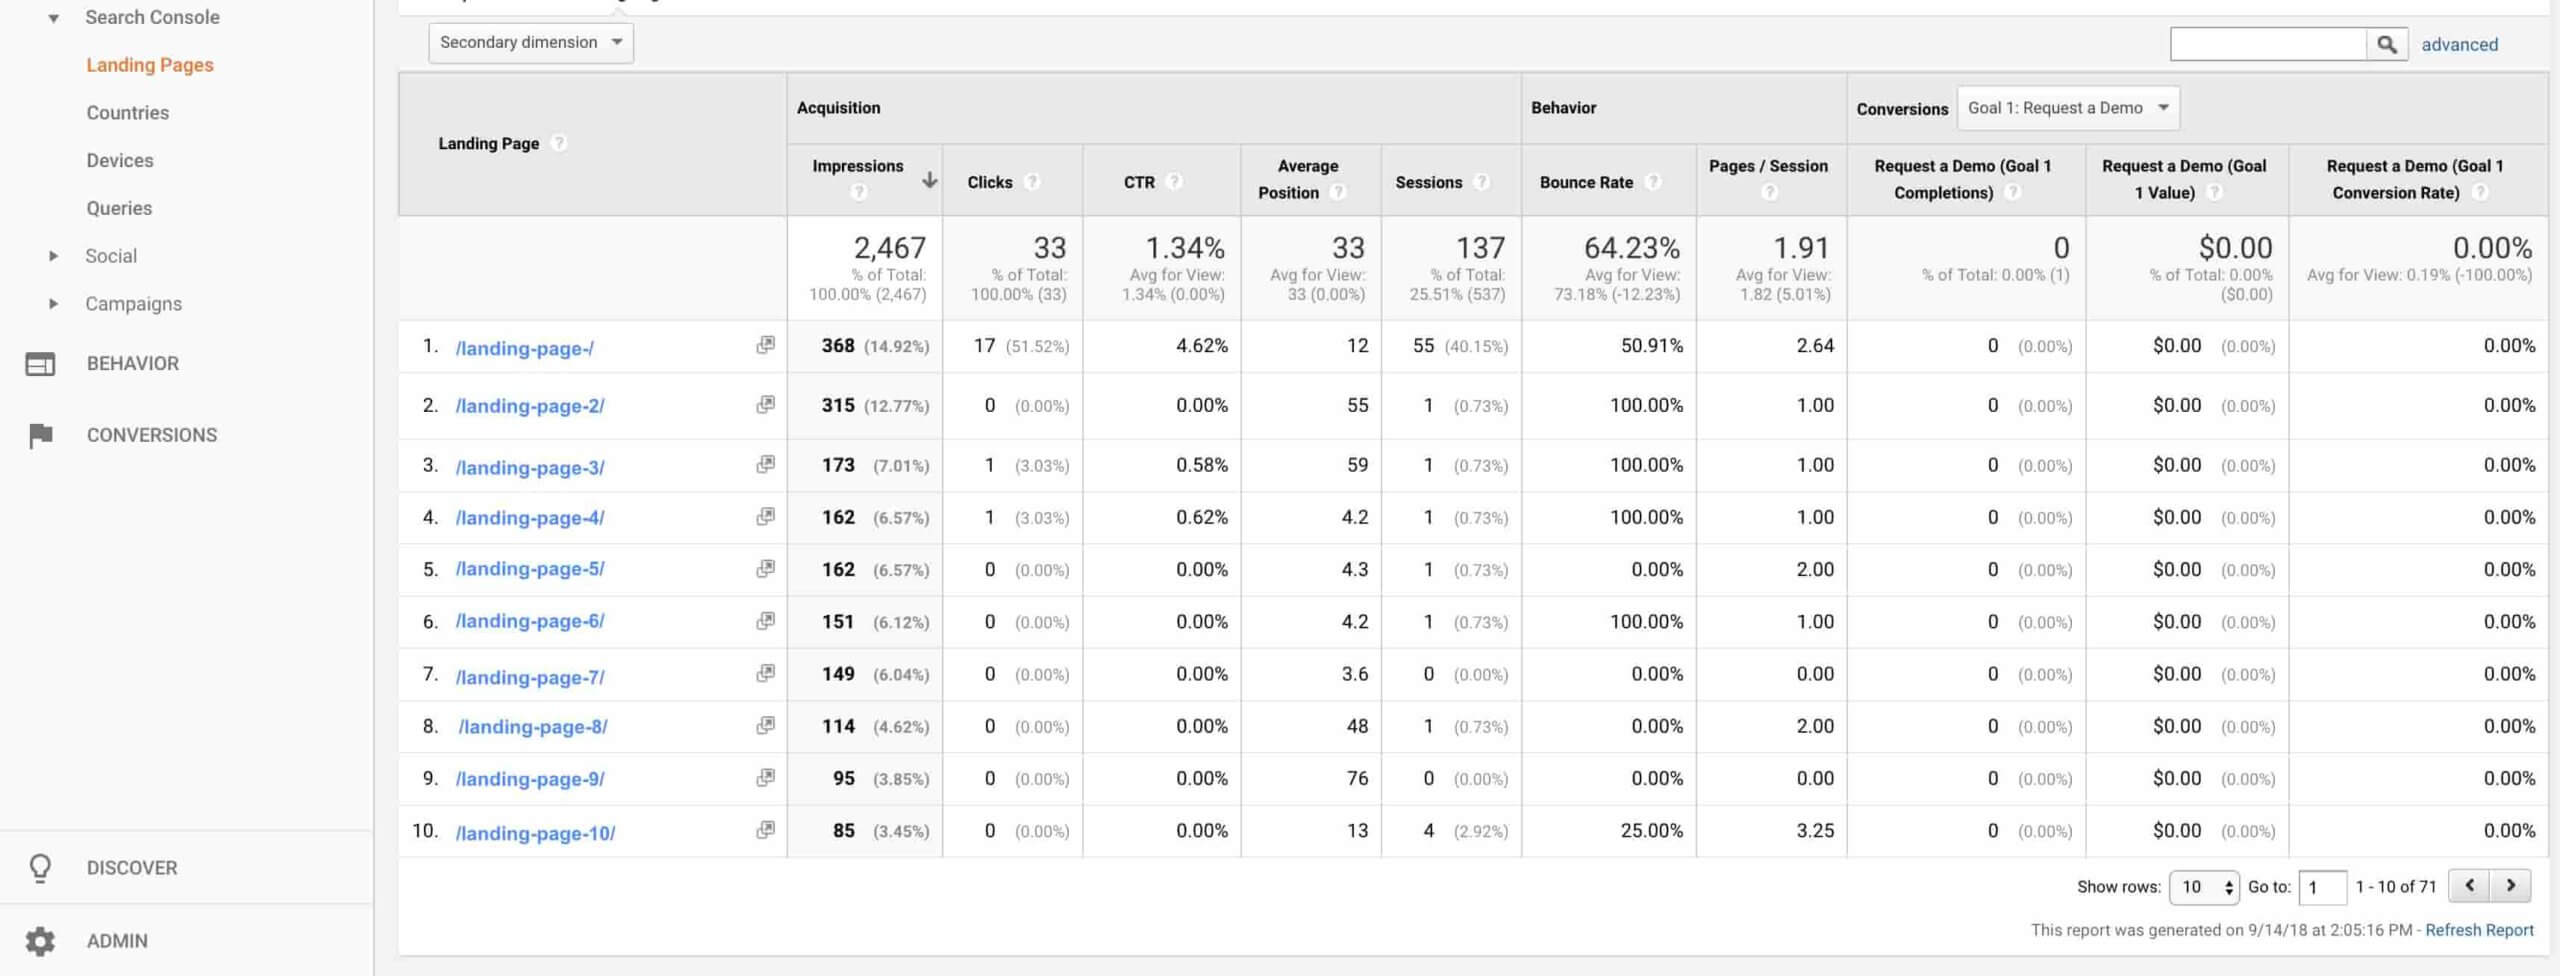 link-google-analytics-to-search-console_Landing-Pages-min